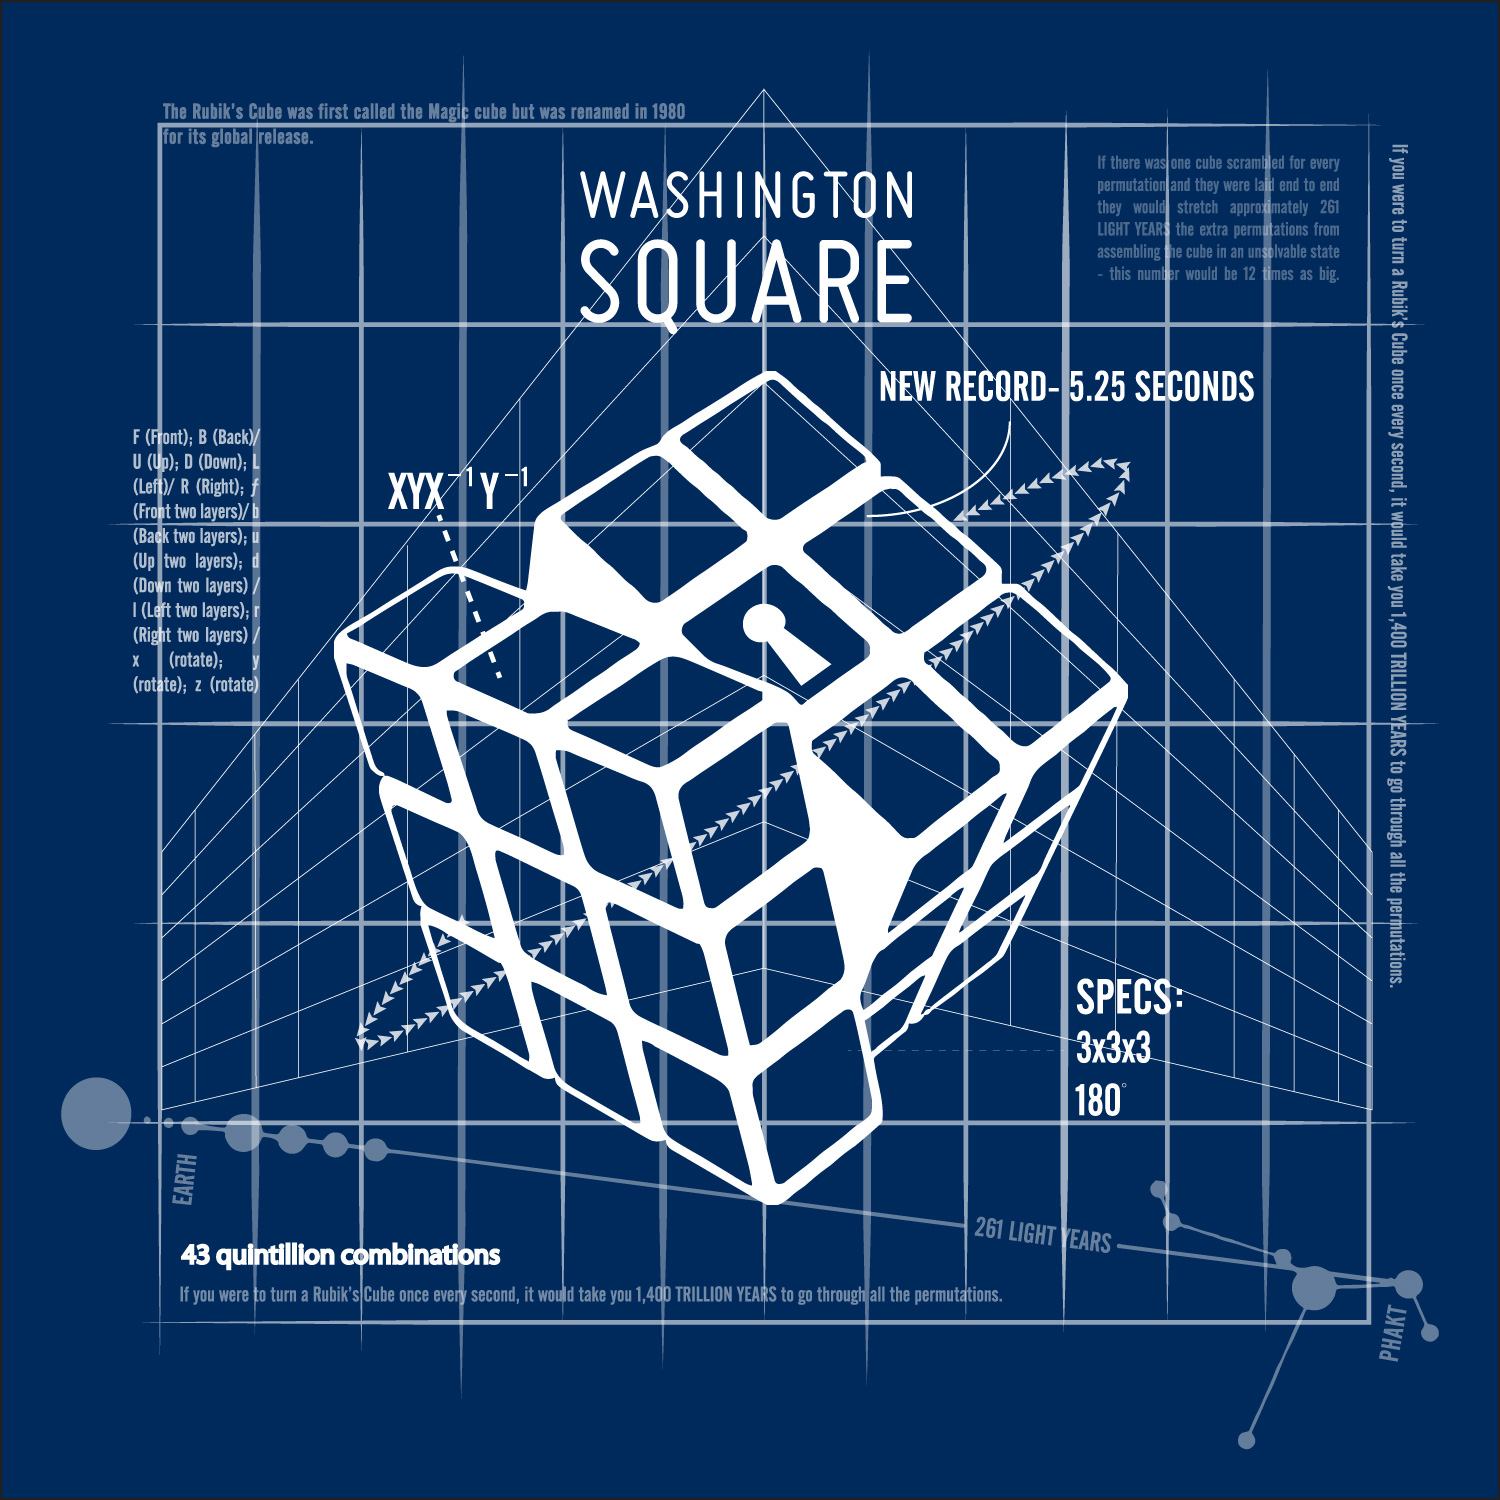 WashingtonSquare-01.jpg